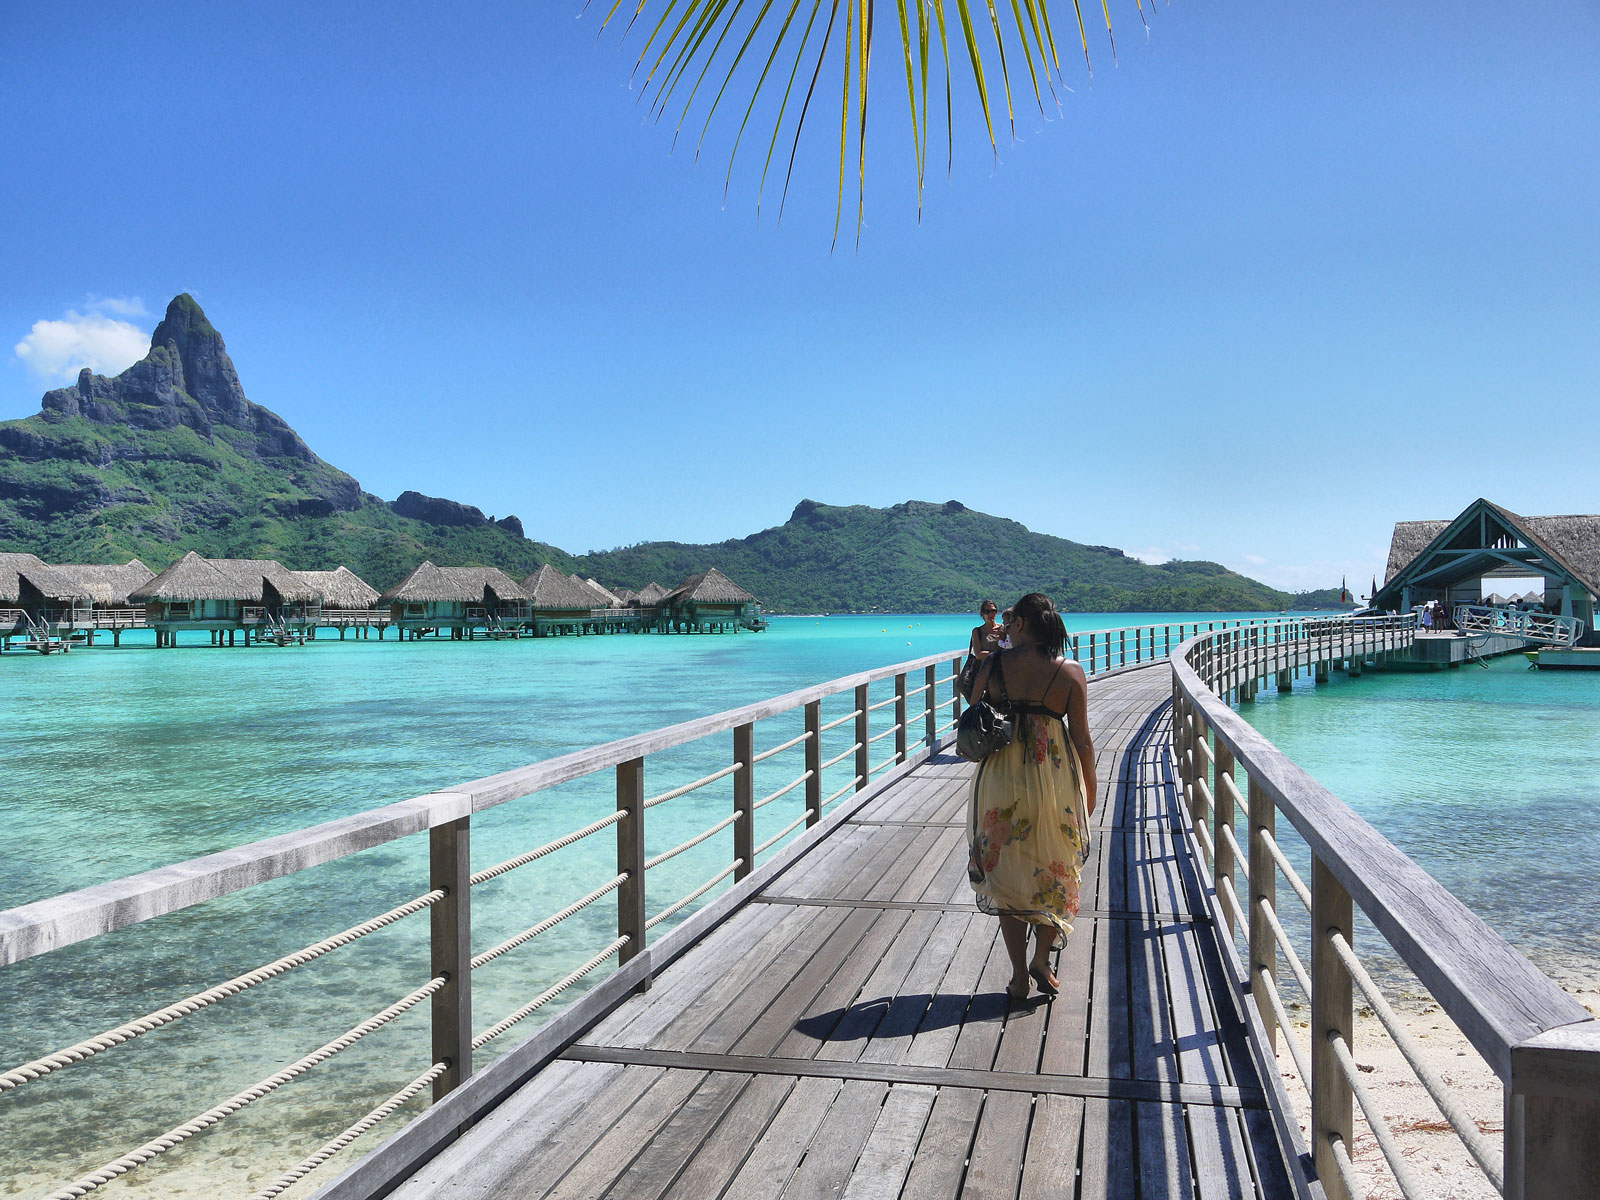 On the Jetty: Boat Transfer to the Main Island - Bora Bora, French Polynesia